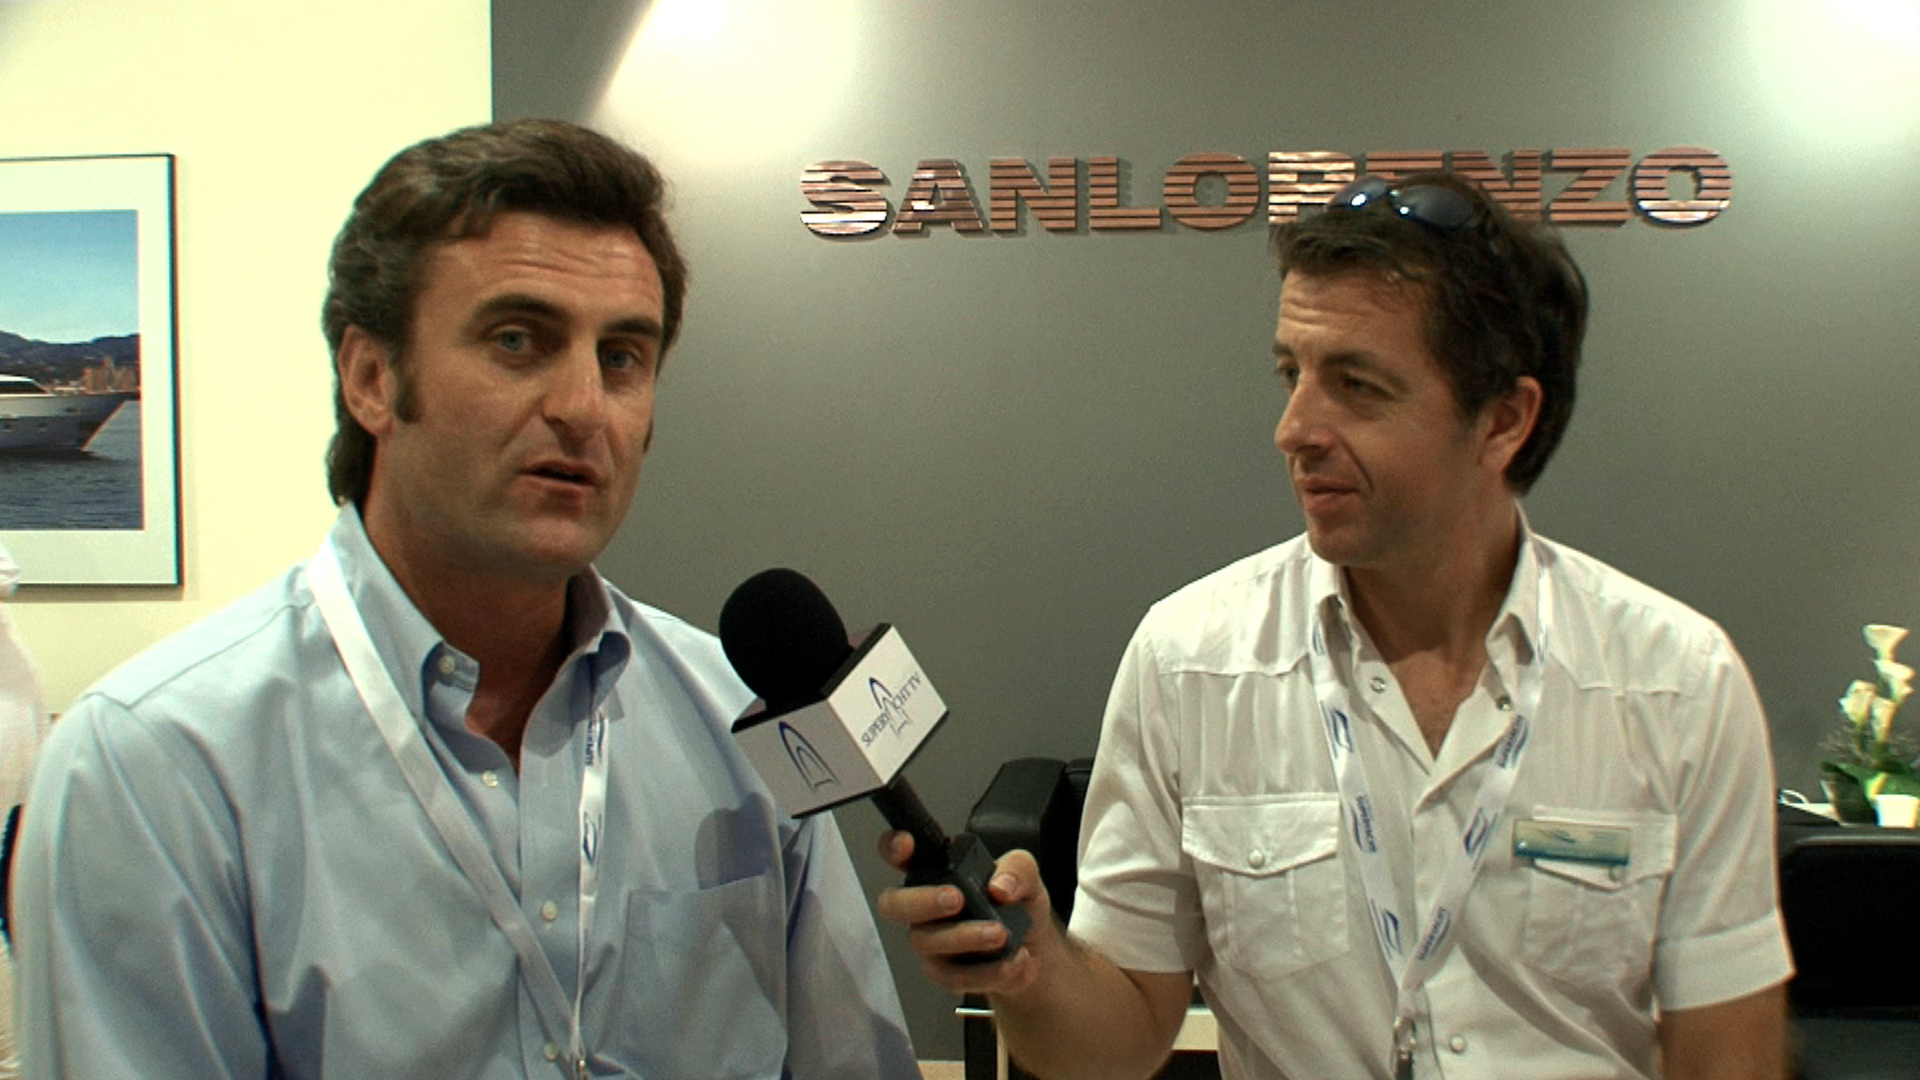 2012 Singapore Yacht Show – SuperyachtTV speaks with Mario Gornati, Head of Sales and Communication, San Lorenzo